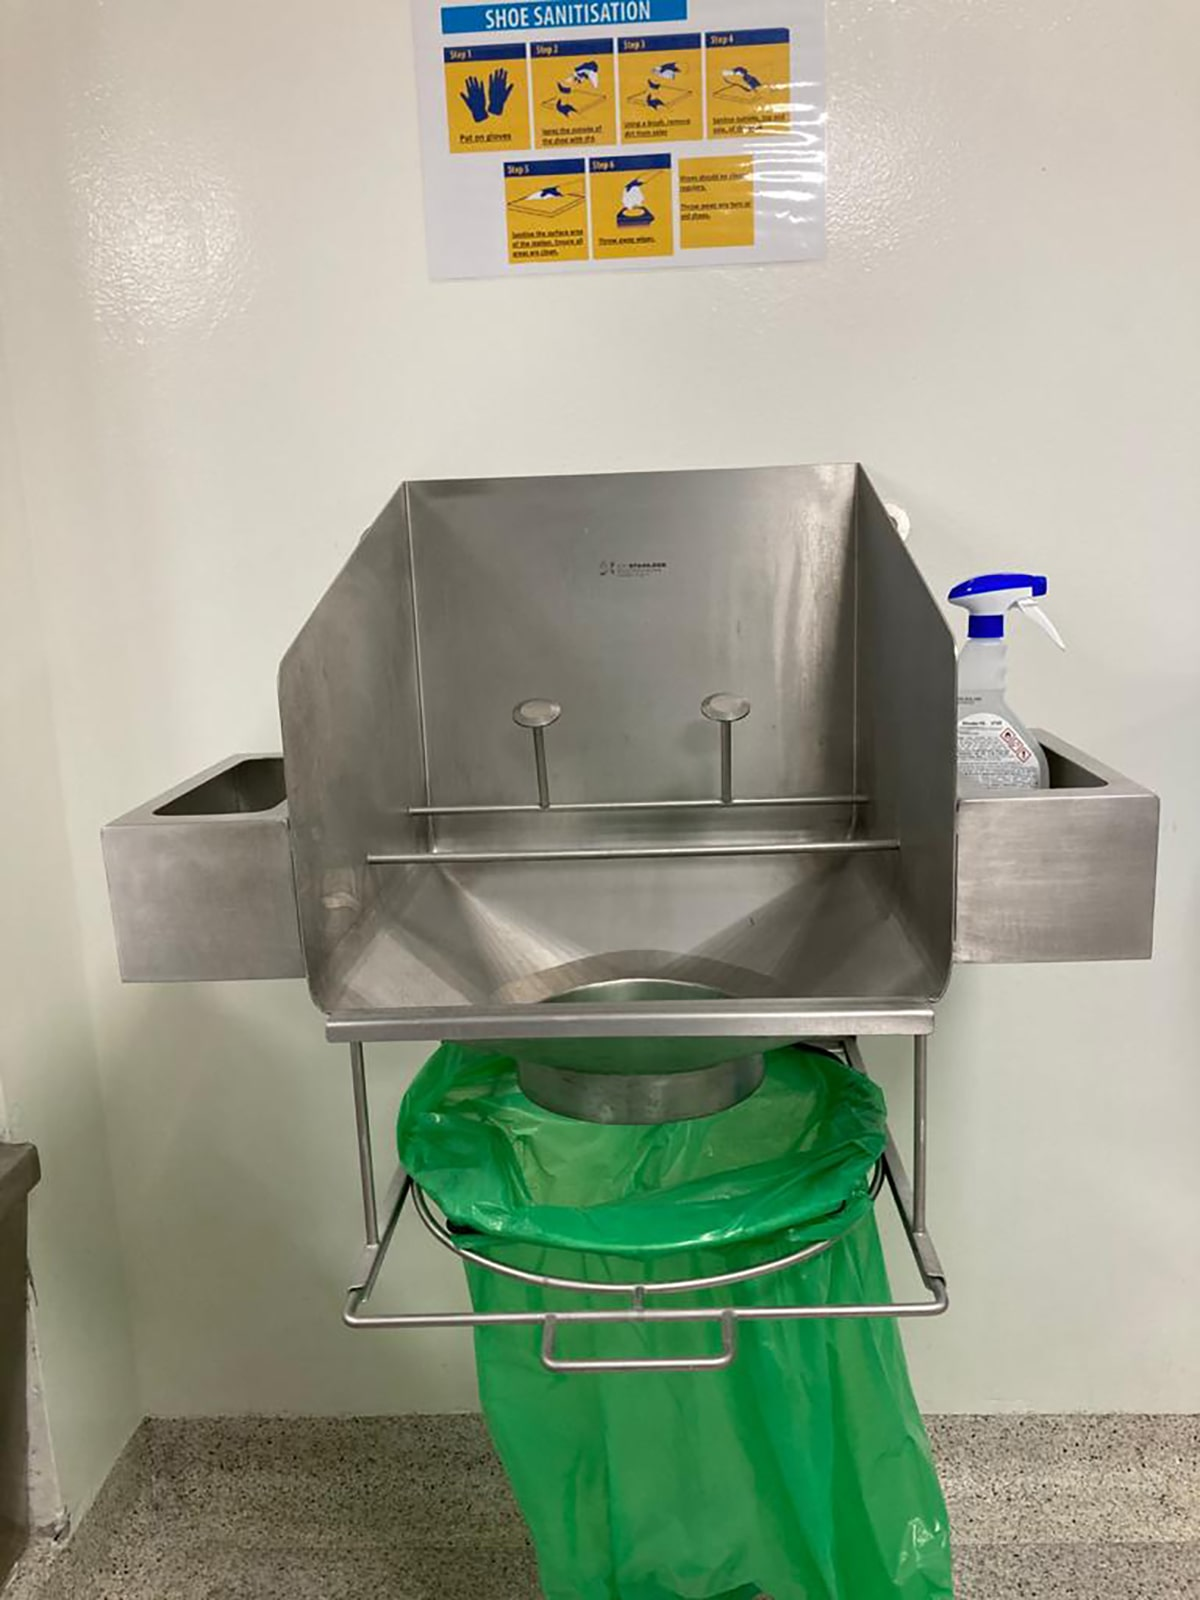 Bespoke Fabrications - SX Engineering - Shoe cleaning station